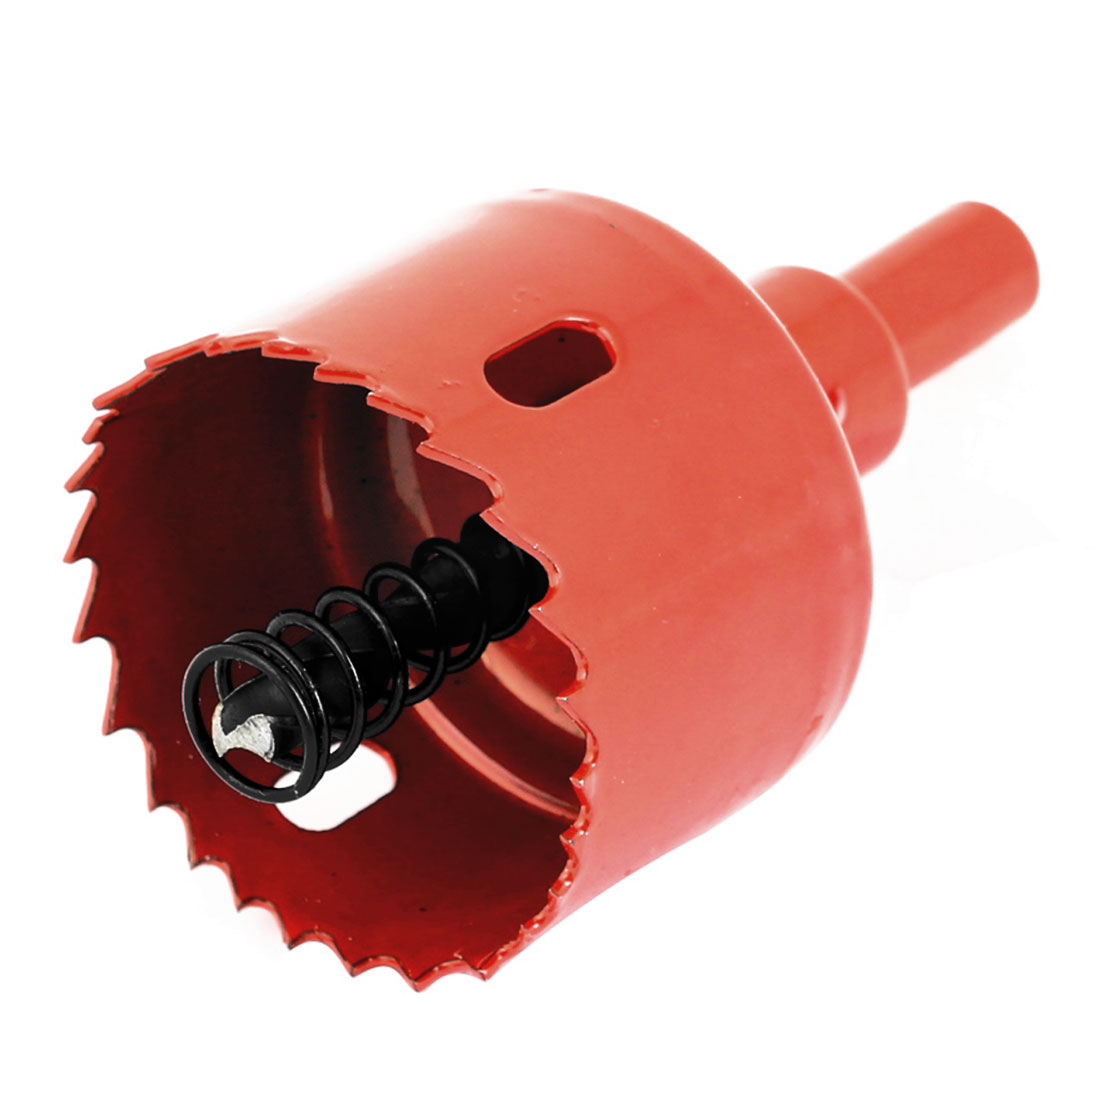 Wood Aluminium Alloy Iron Cutting 45mm Diameter Bimetal Hole Saw